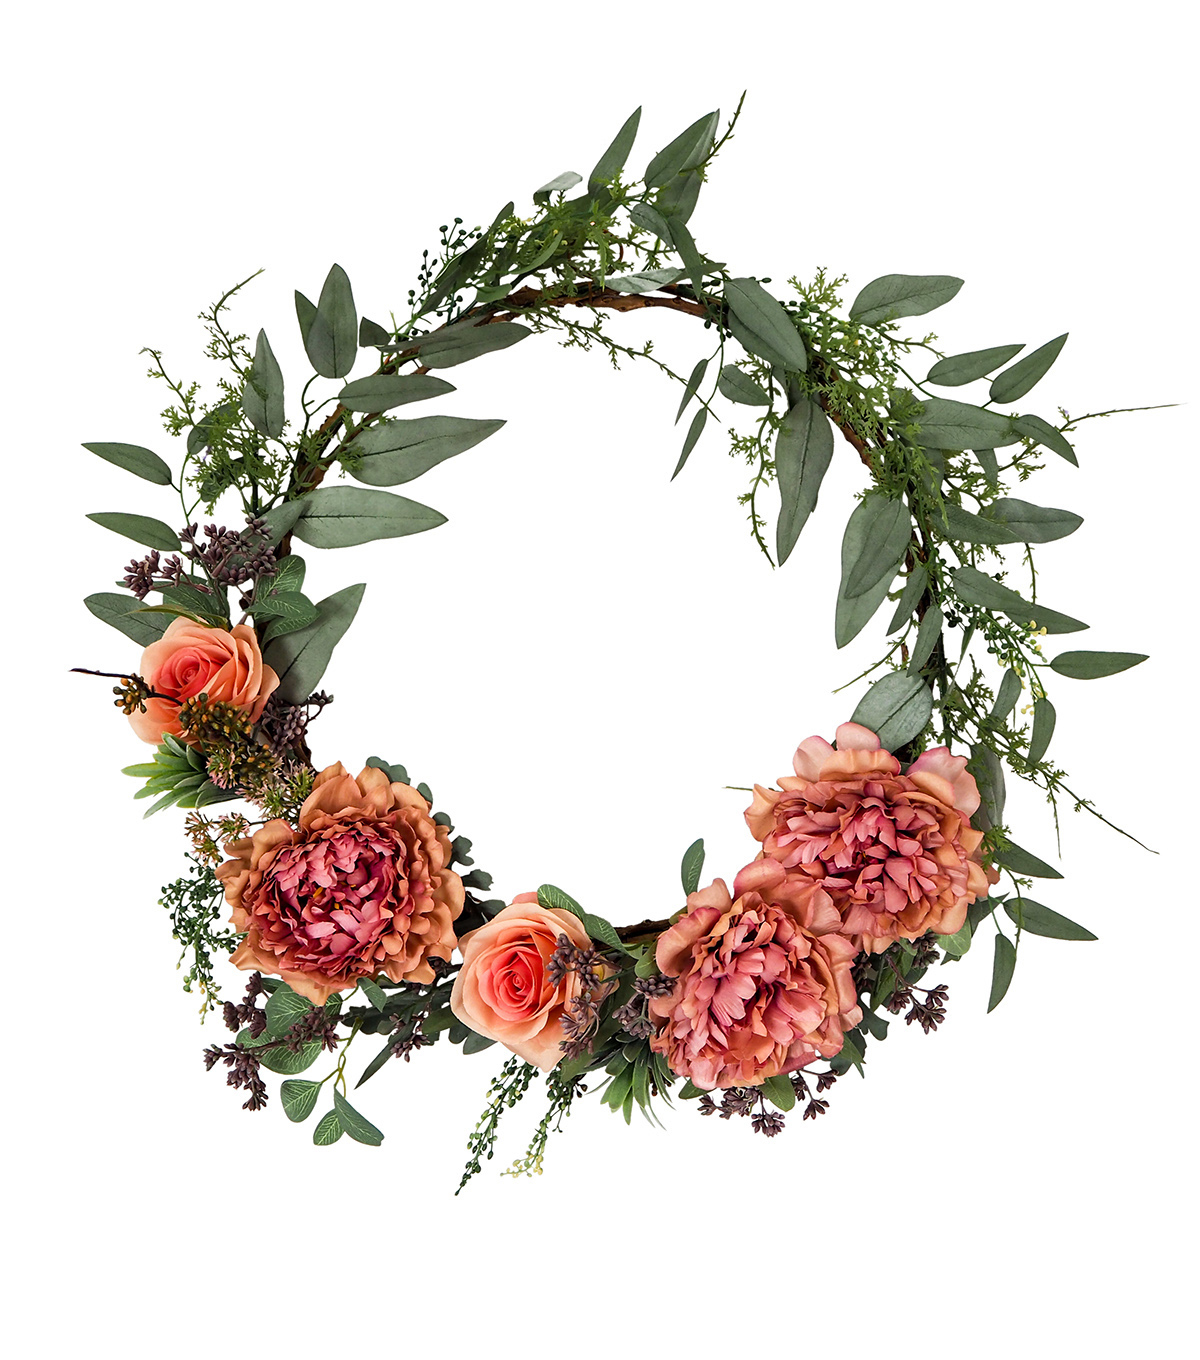 Blooming Autumn Peony & Rose Wreath-Green & Pink